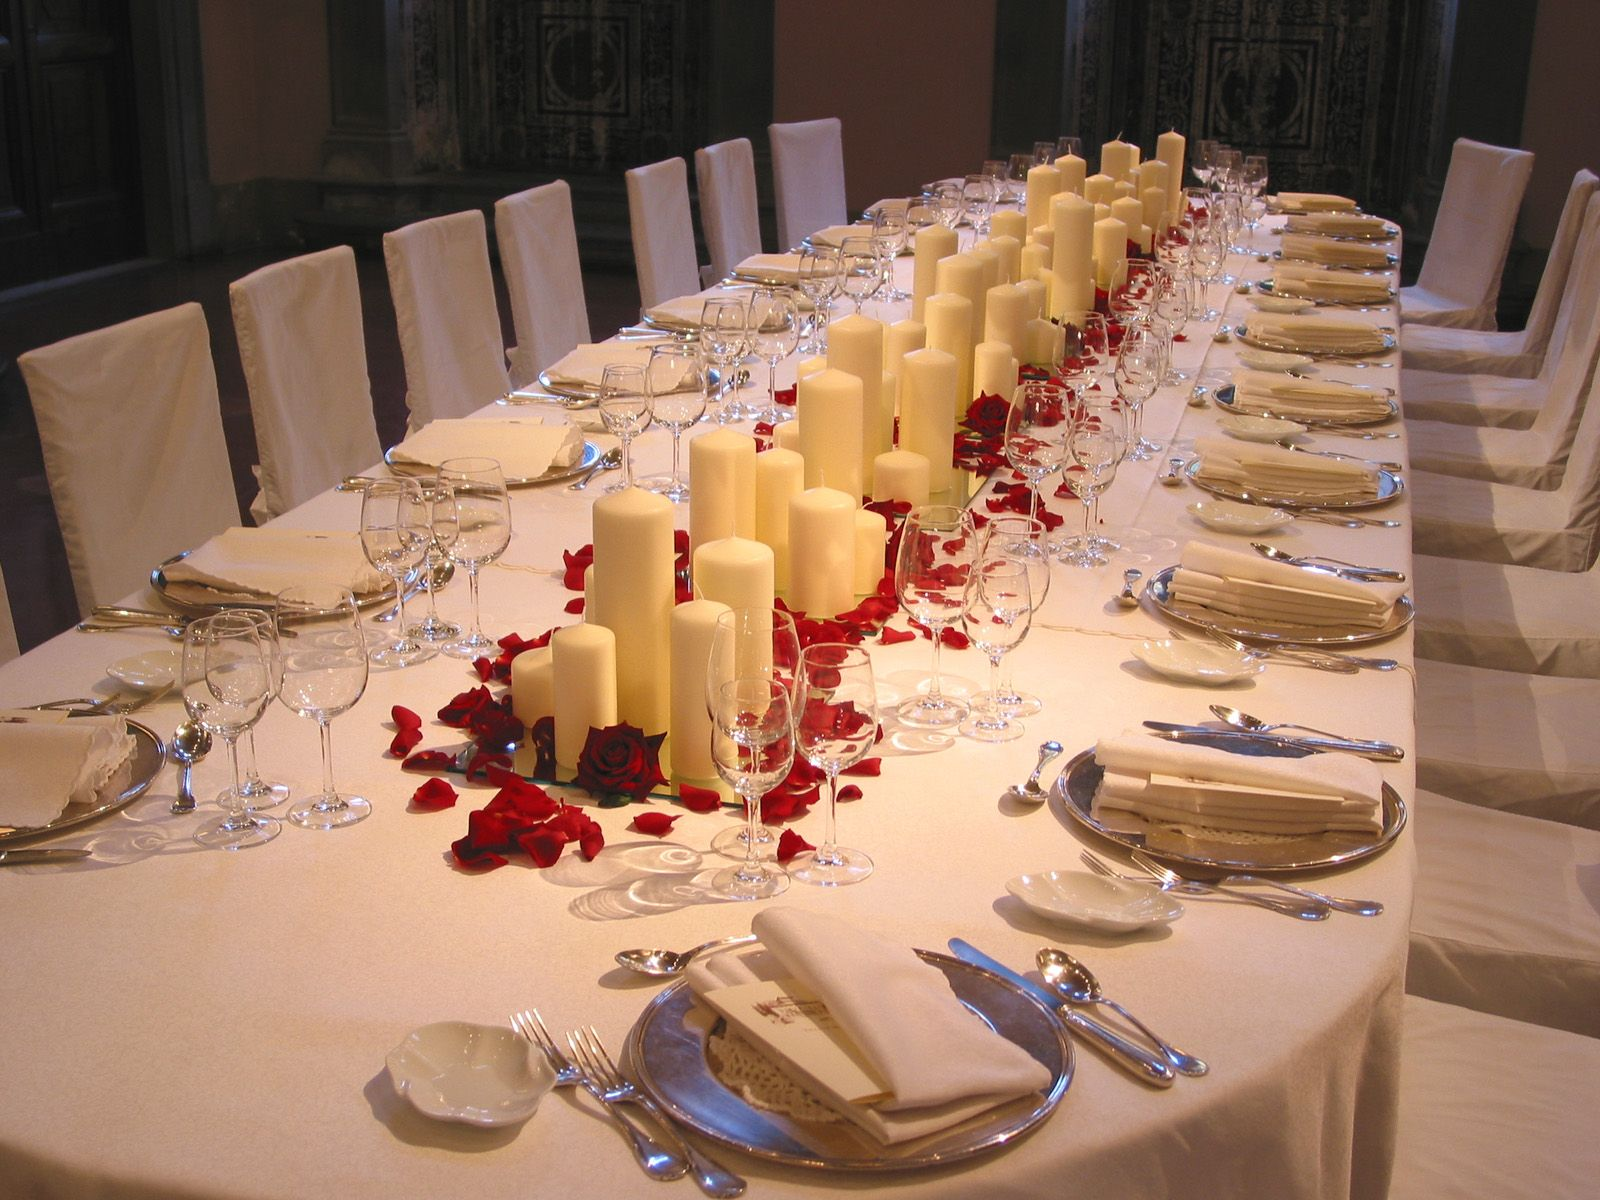 Candles, mirrors and red rose petals.